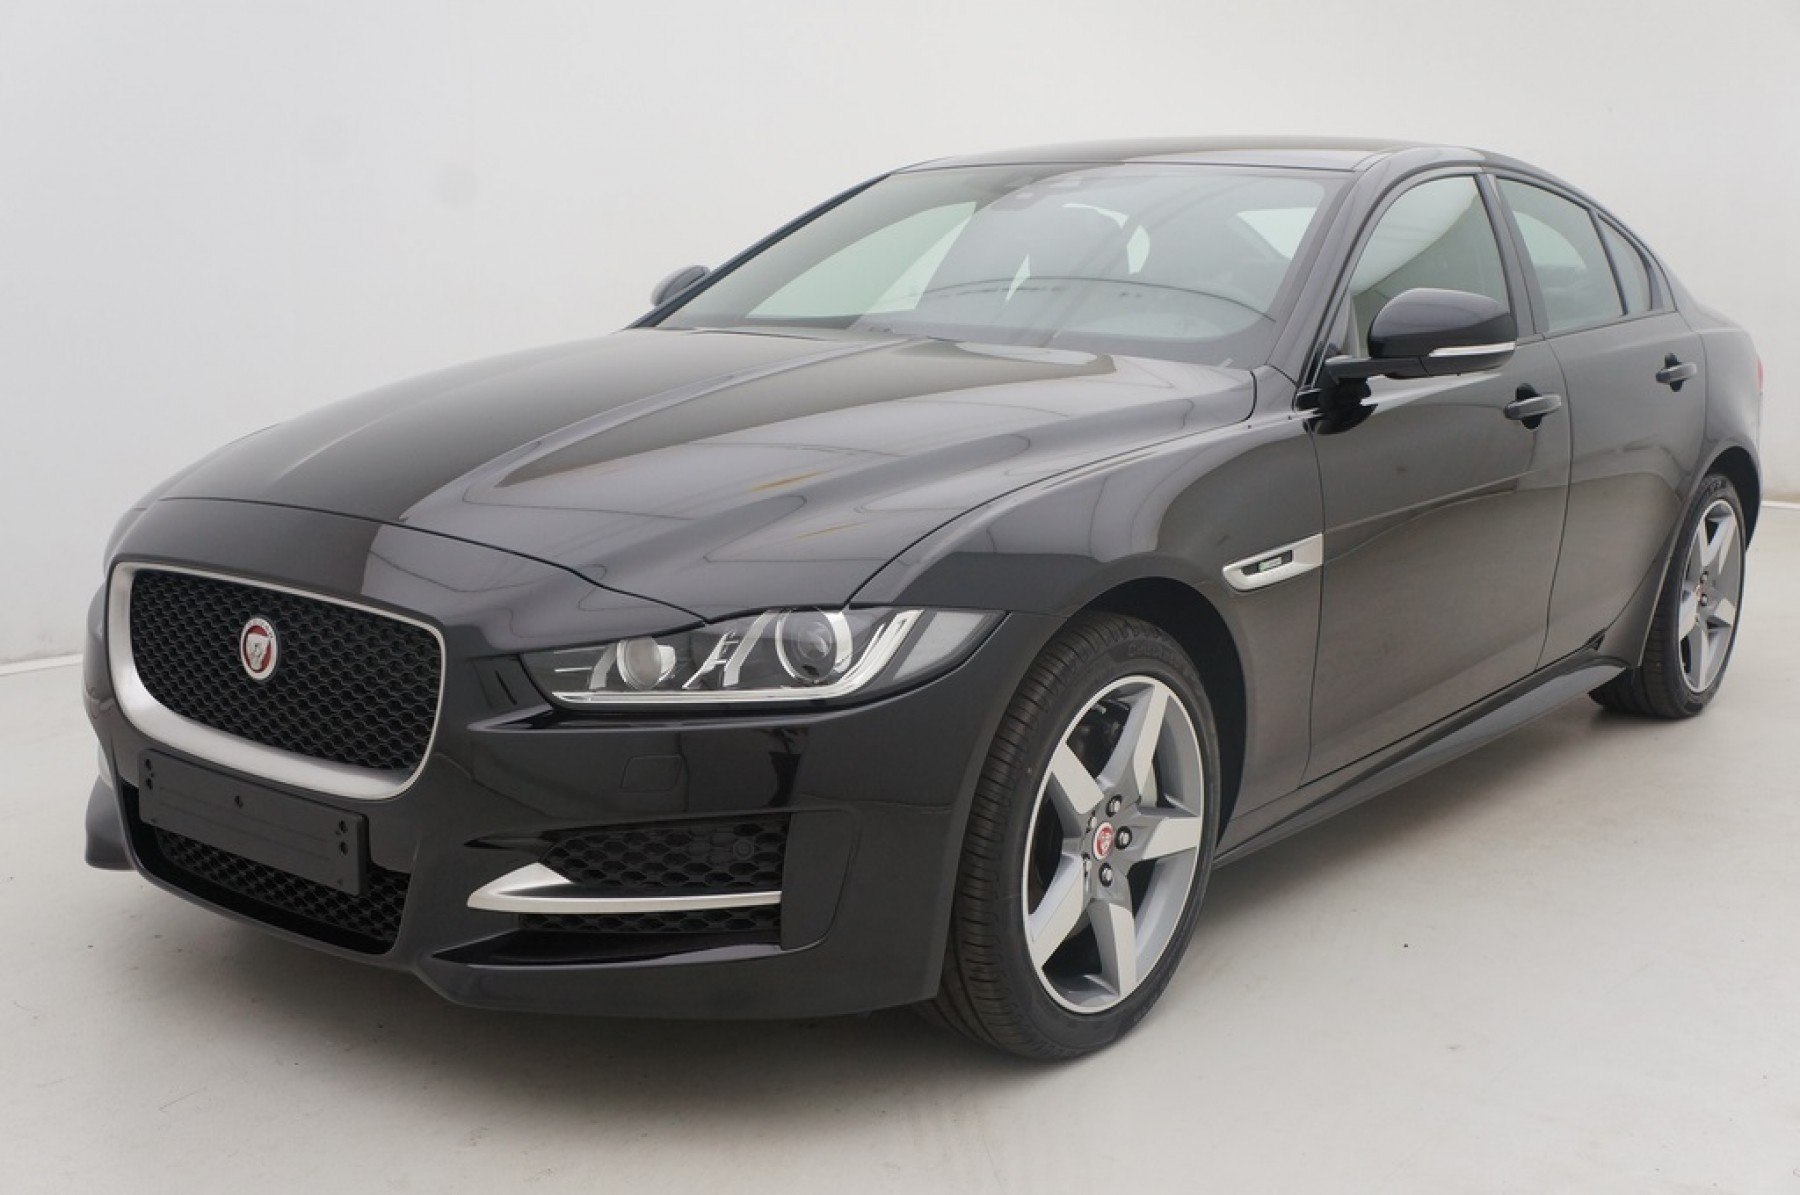 jaguar xe 180 automatique awd r sport auto wise. Black Bedroom Furniture Sets. Home Design Ideas